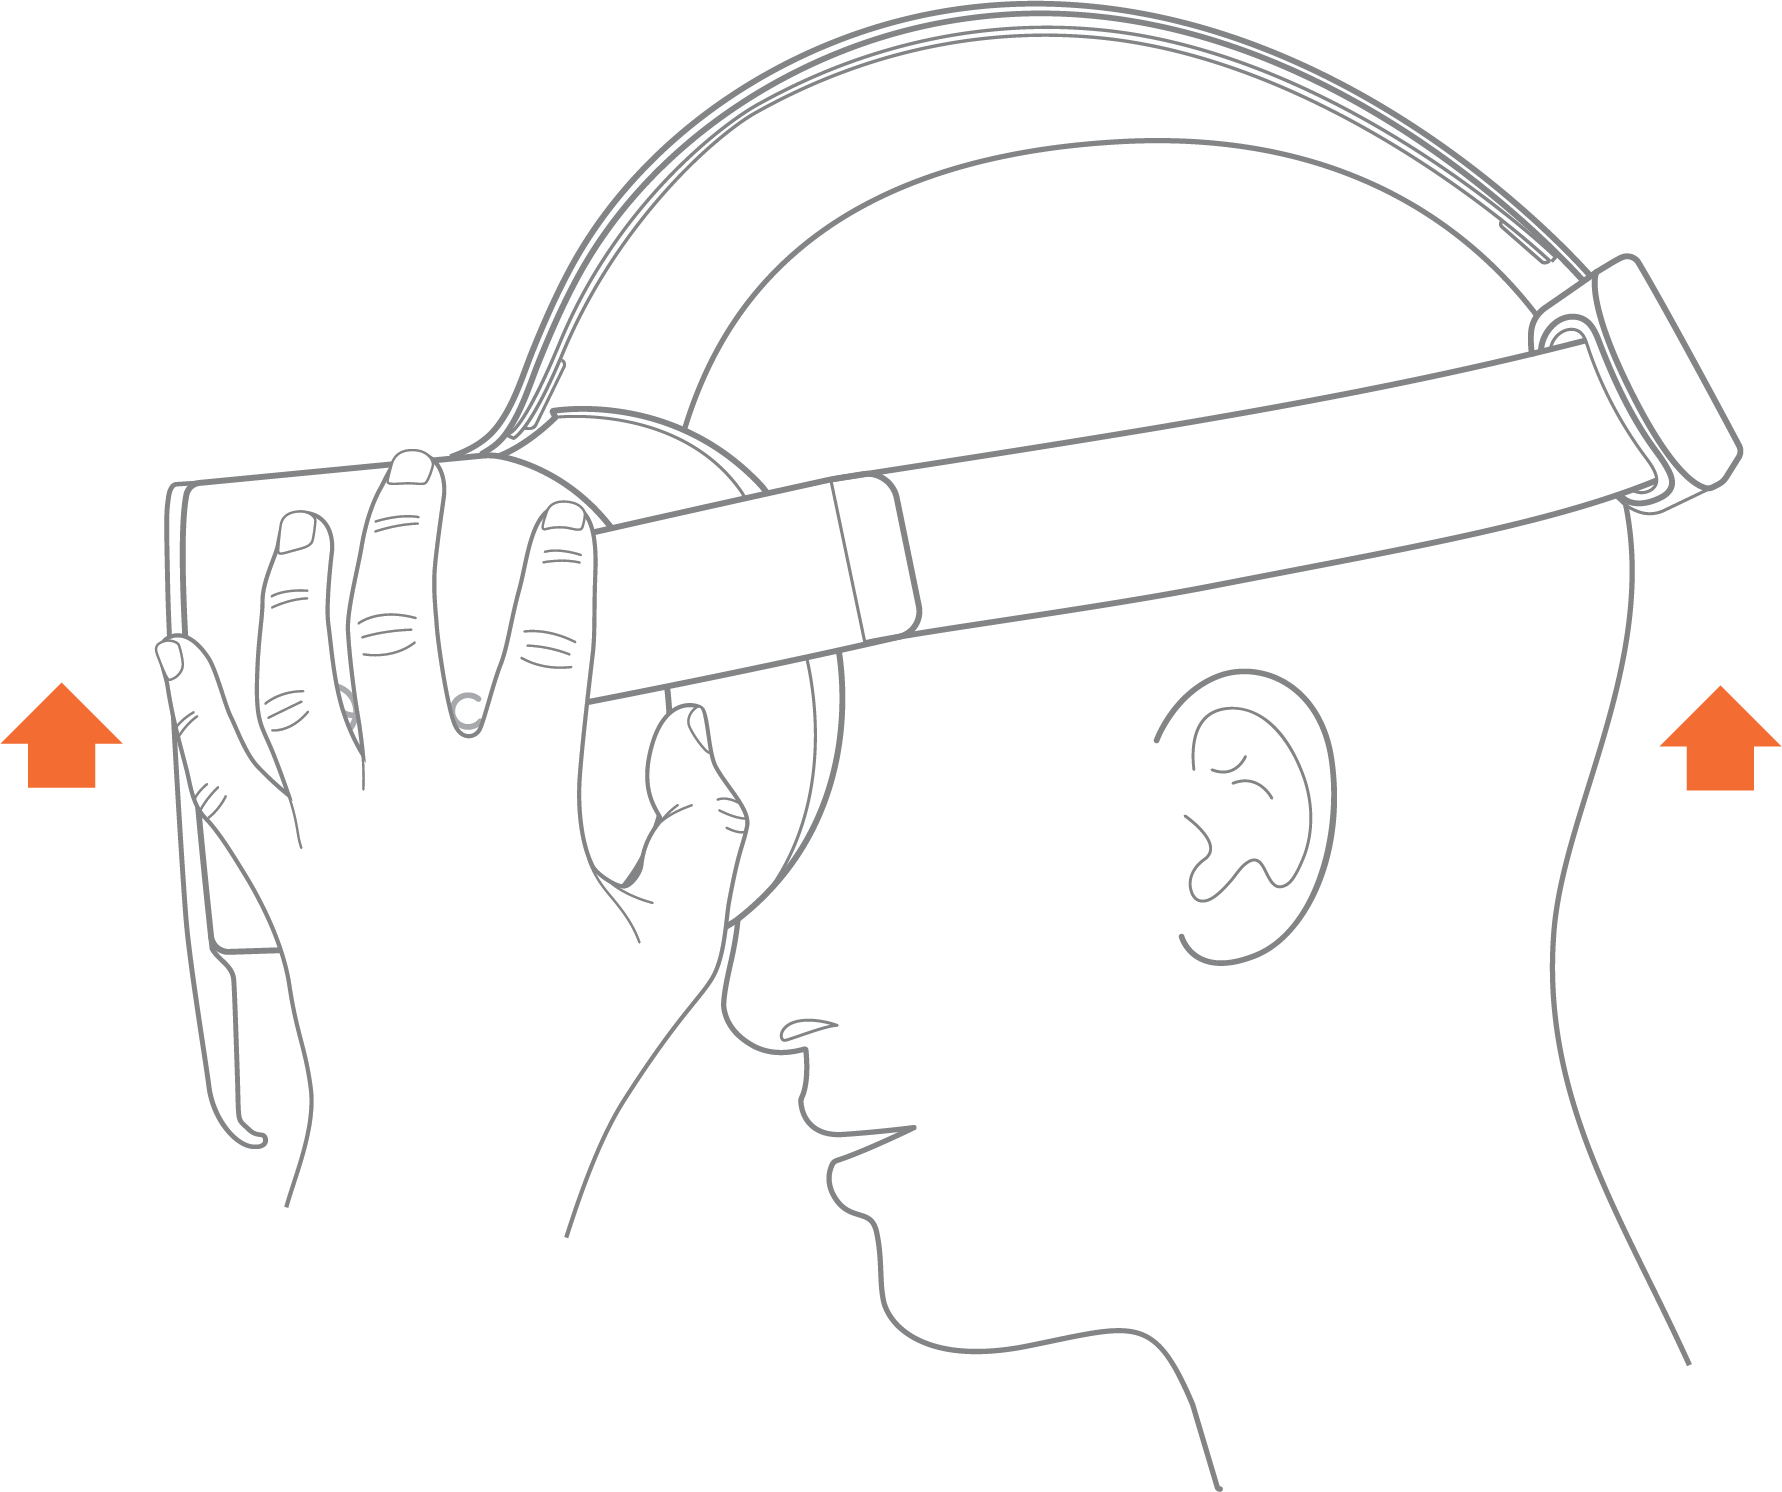 Pico_G2_4K_Images_Remove_Headset_B.png